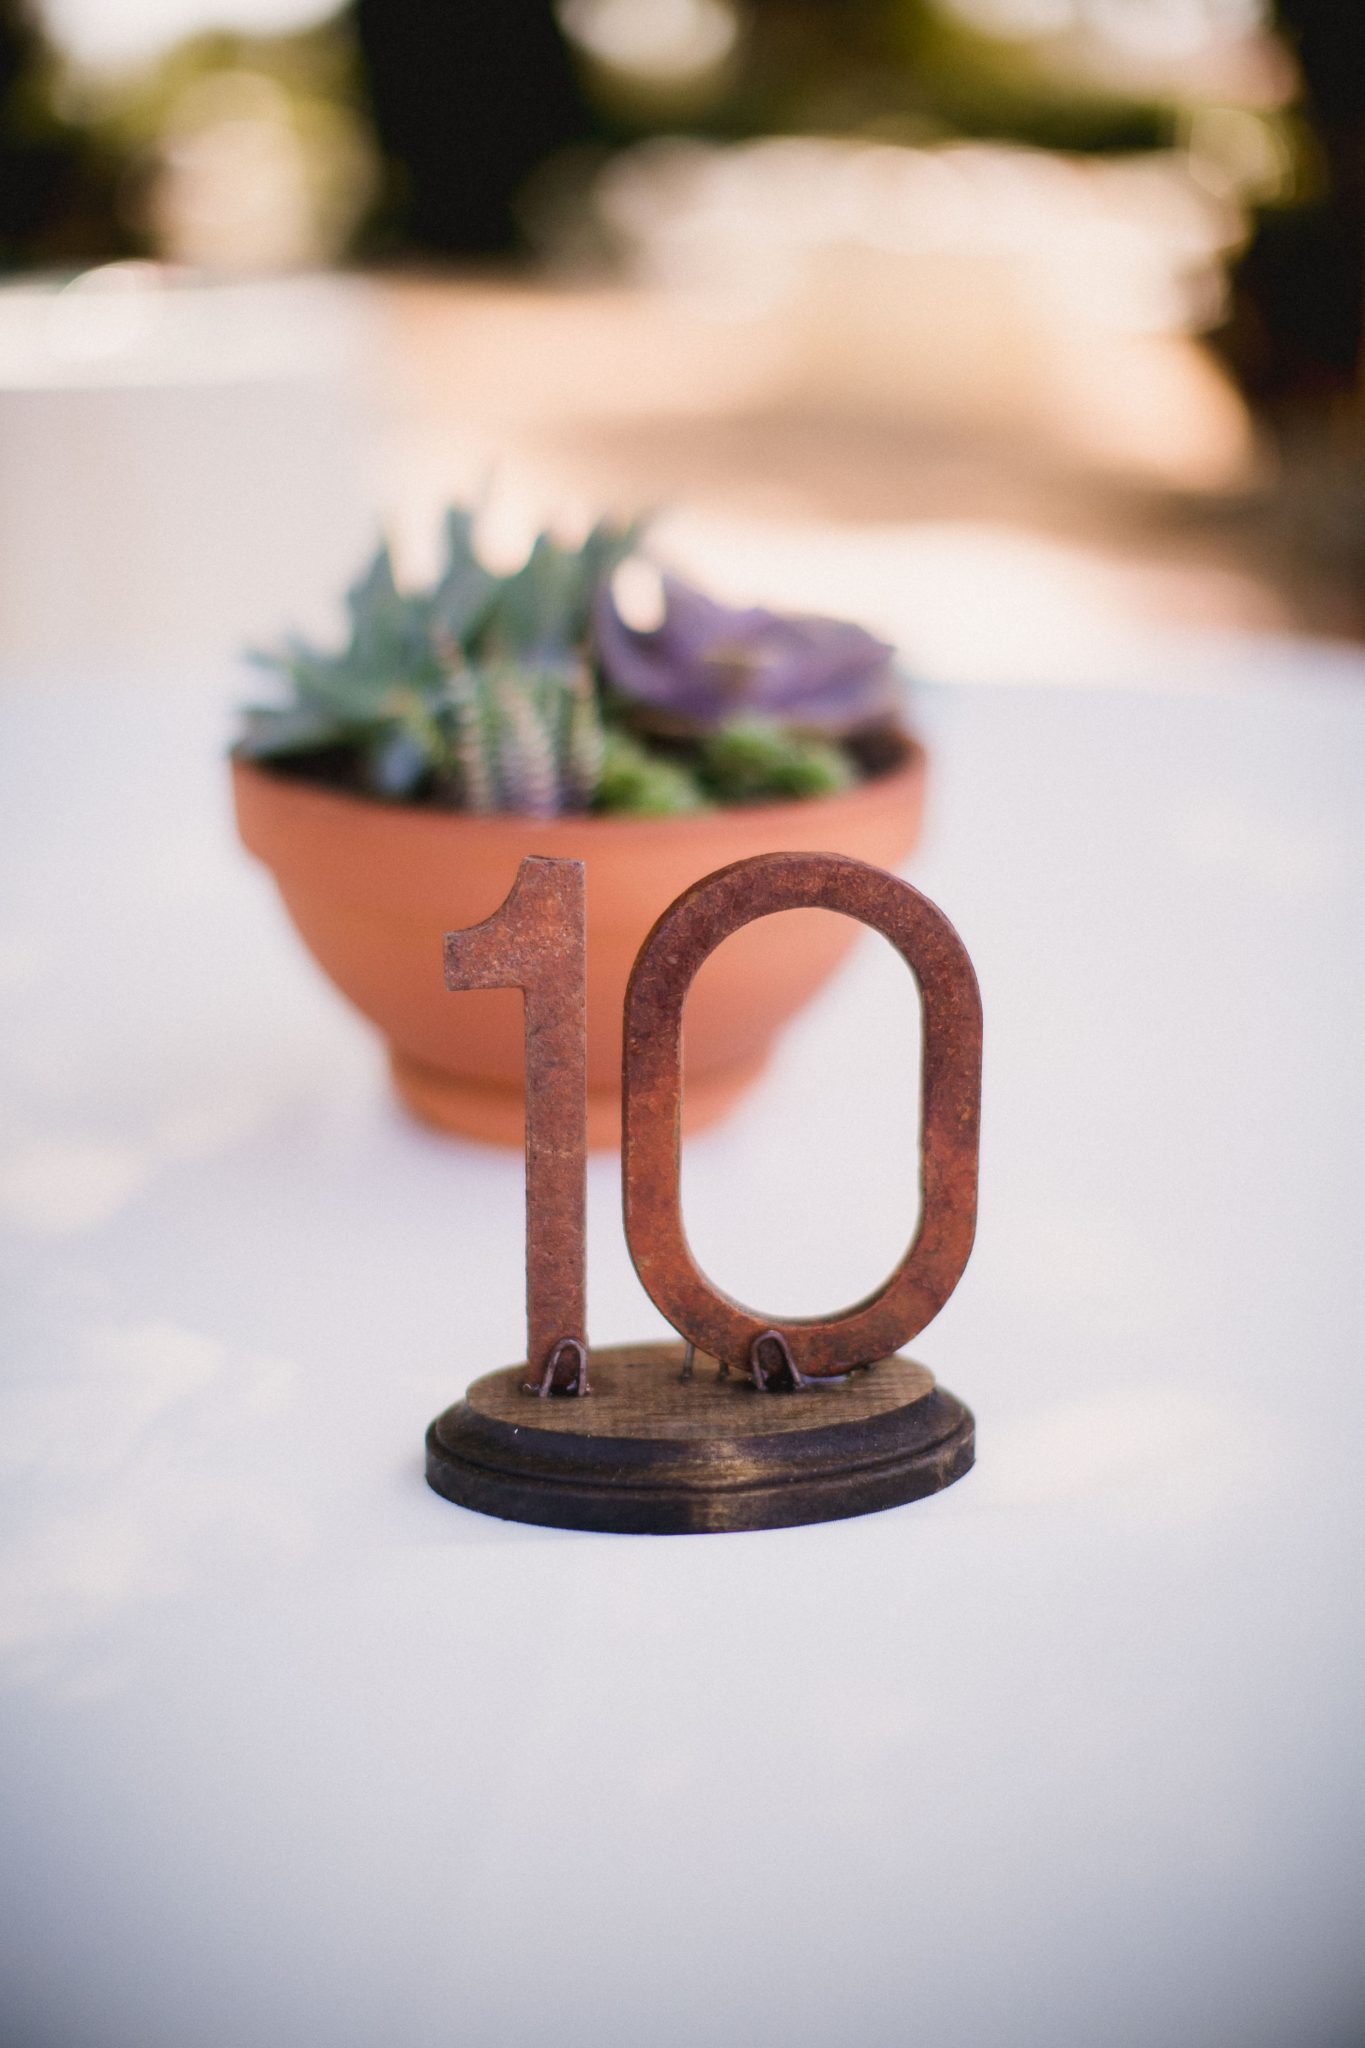 Table number decor made of terra cotta for a wedding reception